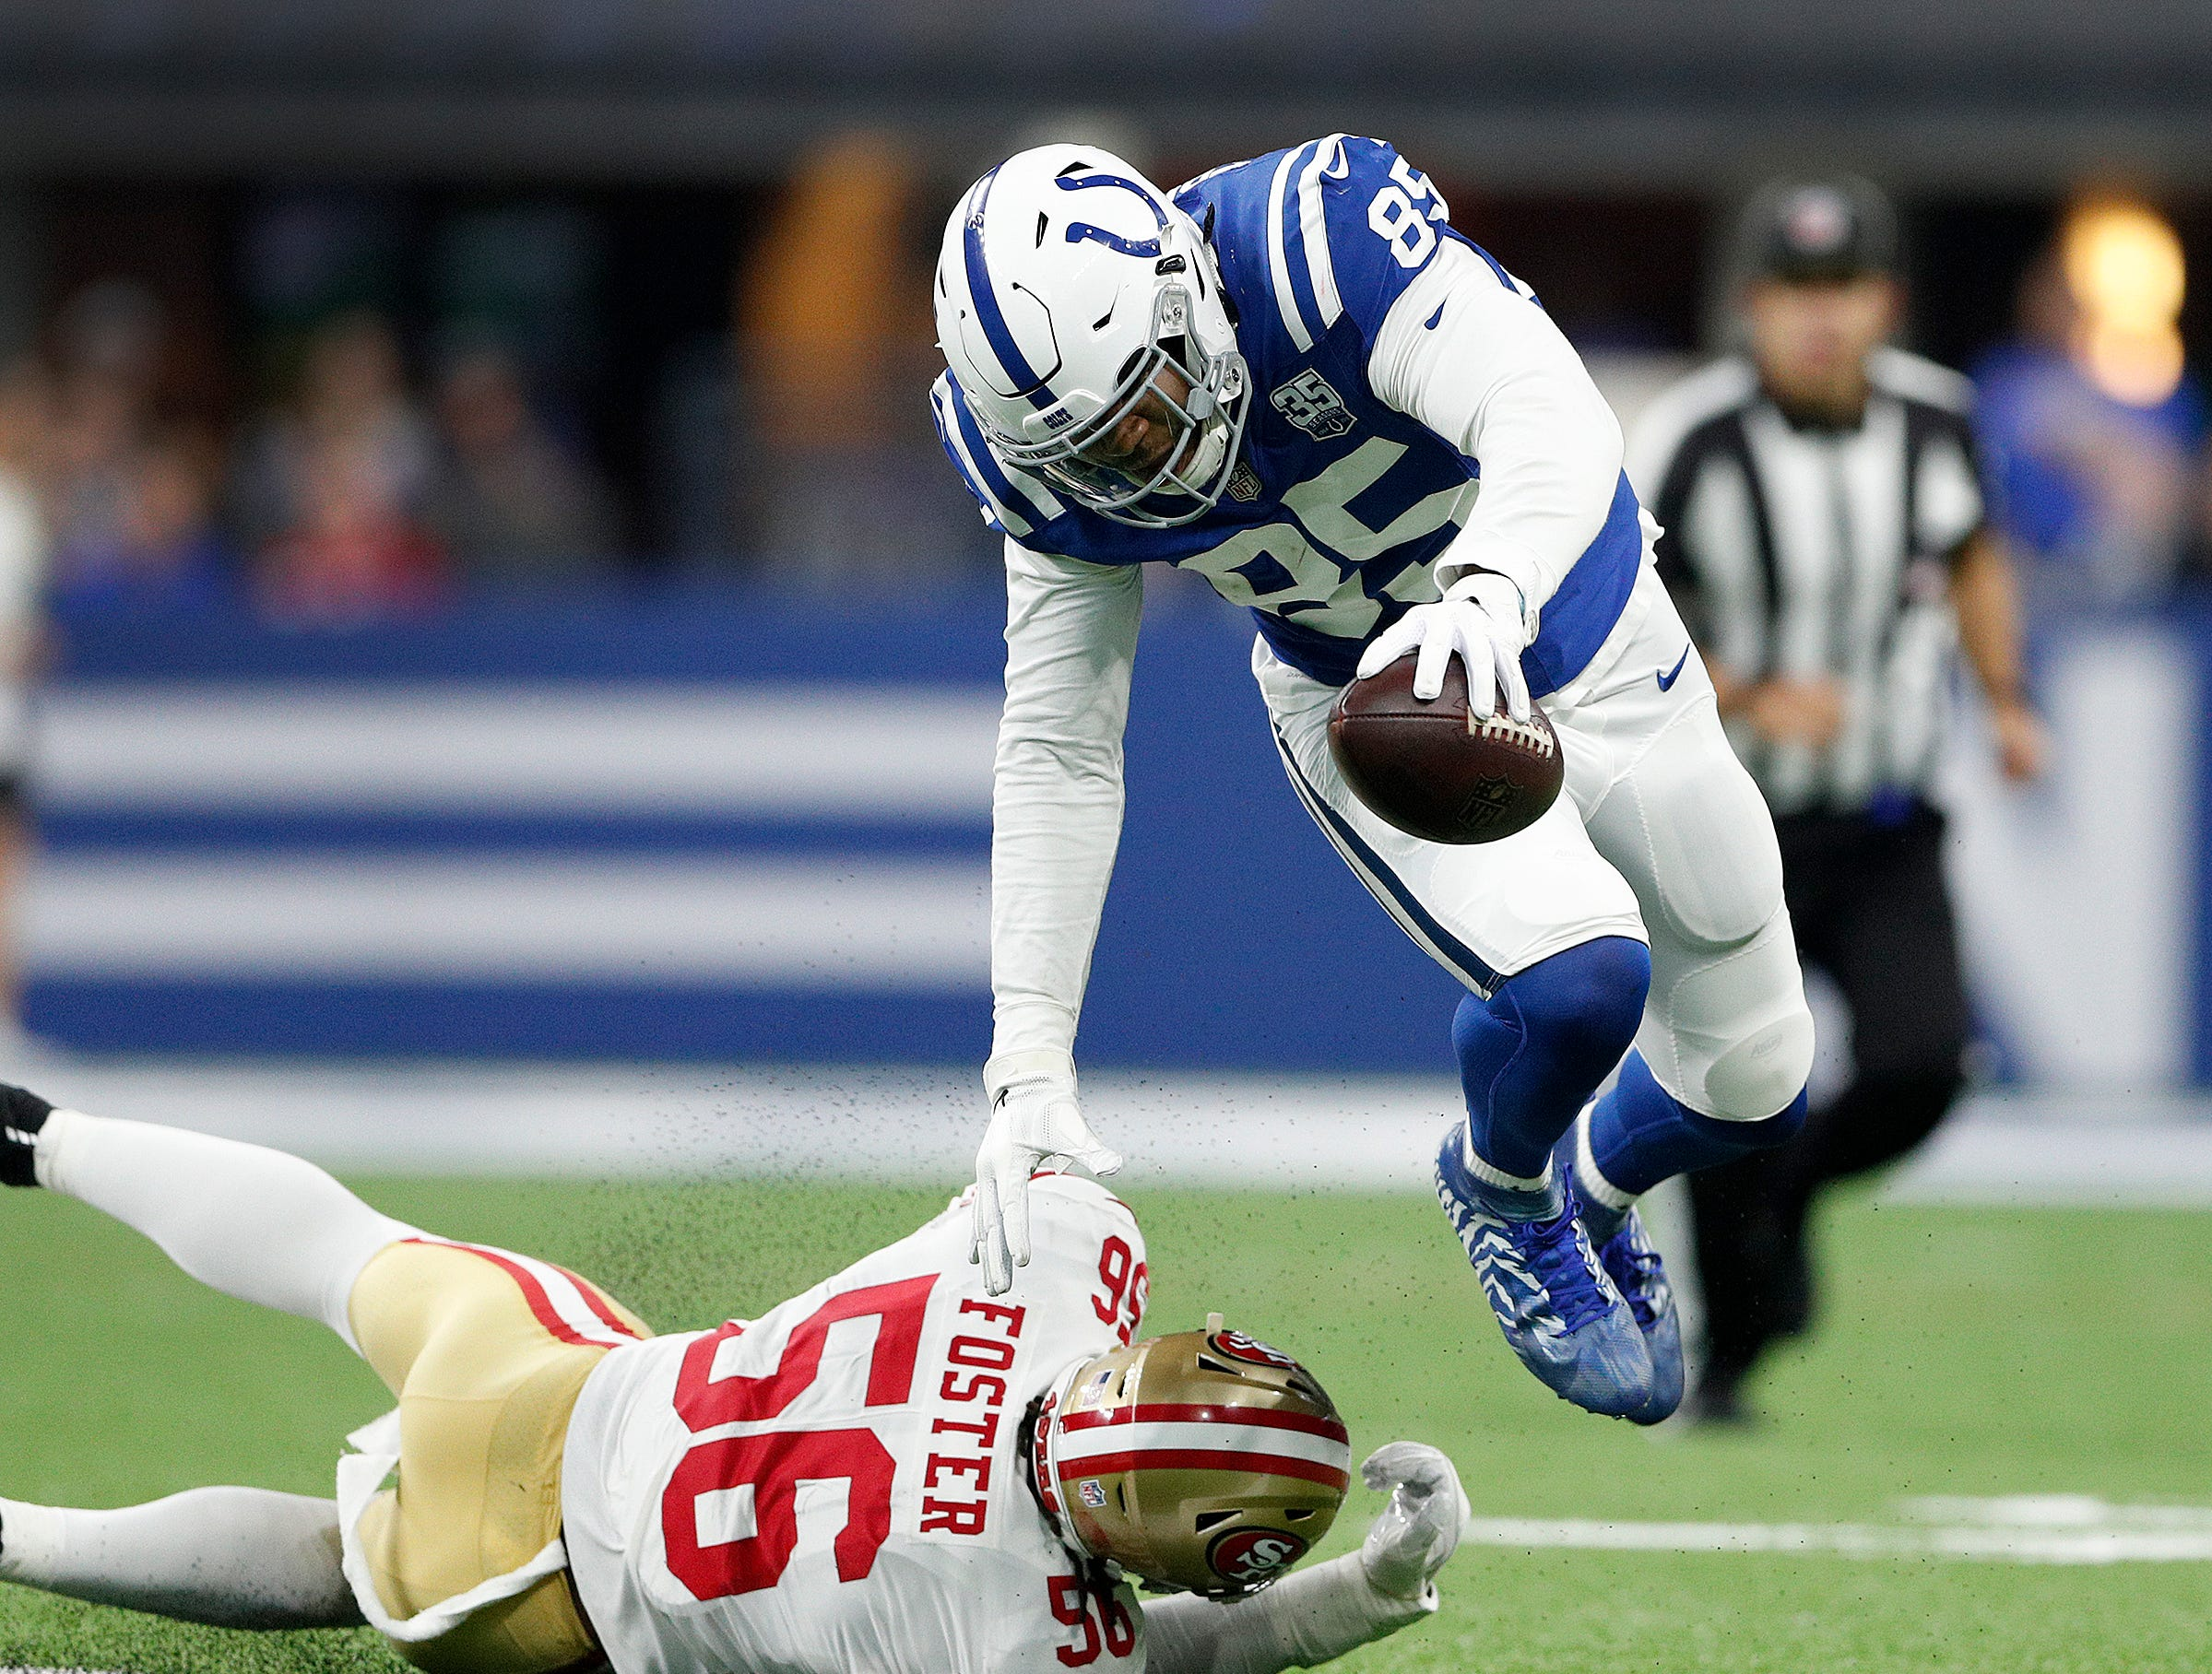 Indianapolis Colts tight end Eric Ebron (85) attempts to avoid the tackle by San Francisco 49ers linebacker Reuben Foster (56) in the first half of their preseason football game at Lucas Oil Stadium Saturday, August 25, 2018.